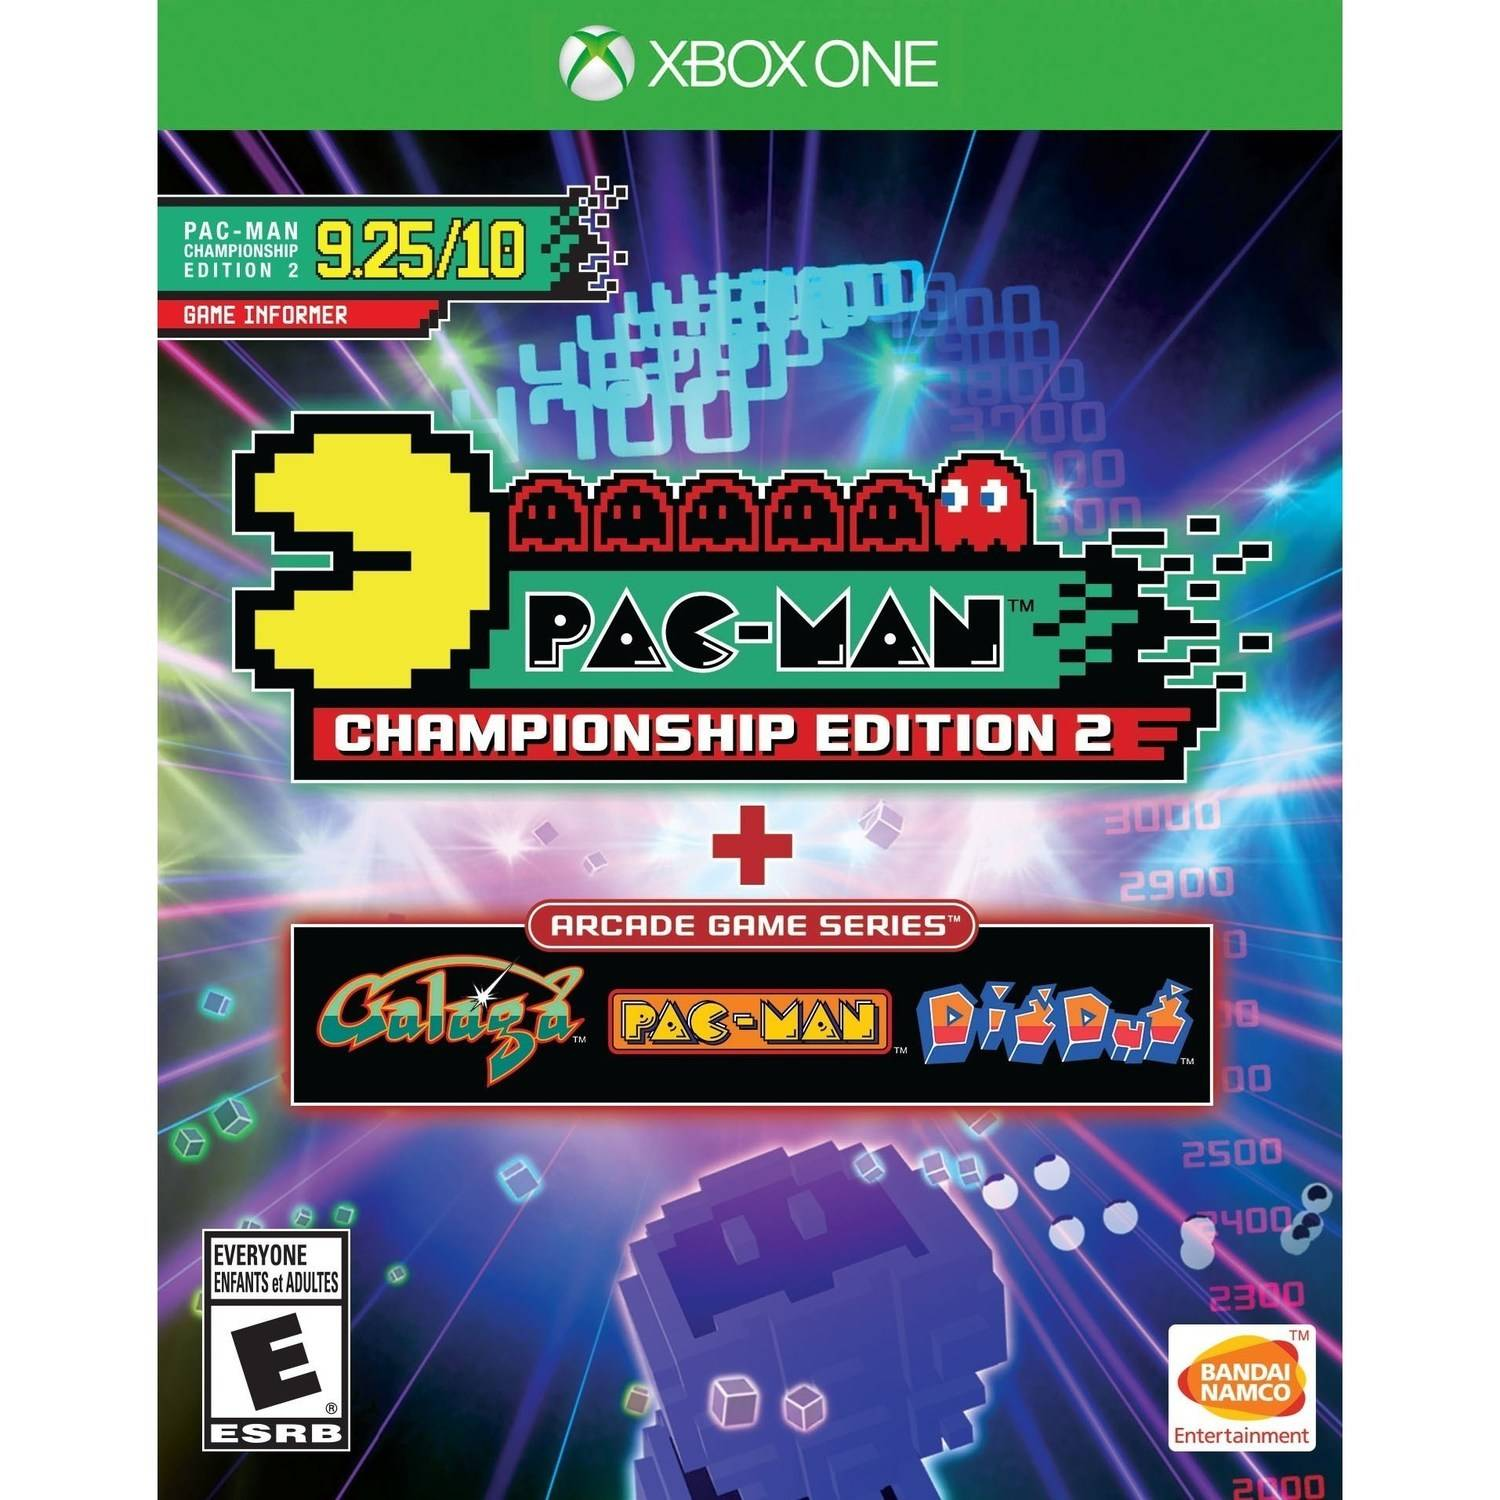 Pac-Man Championship Edition 2 + Arcade Game Series, Bandai/Namco, Xbox One, 722674220705